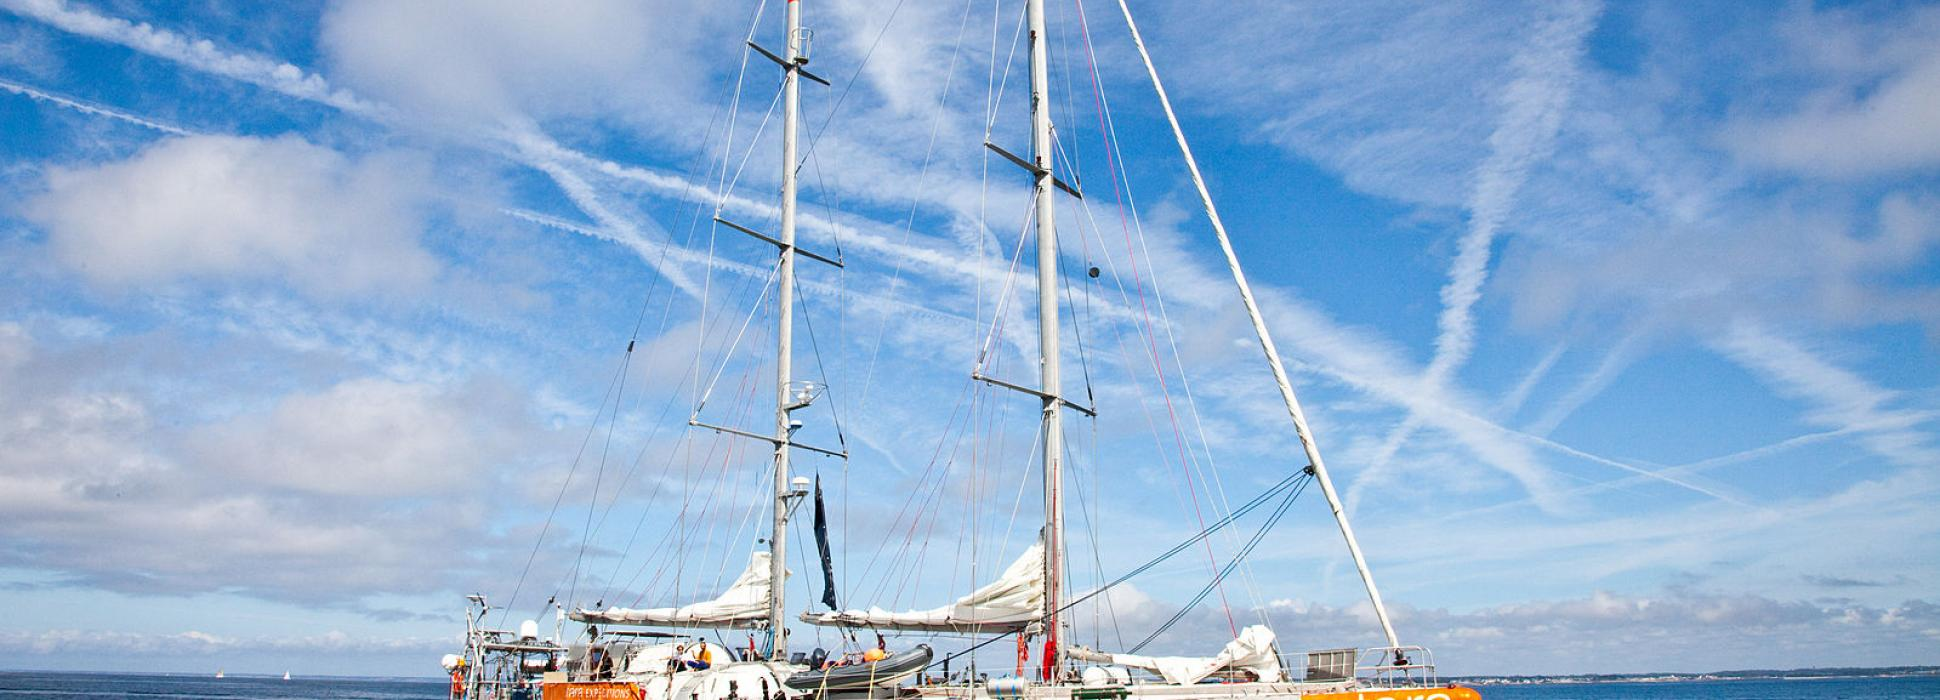 Morbihan: the scientific schooner Tara has left Lorient for a new Expedition